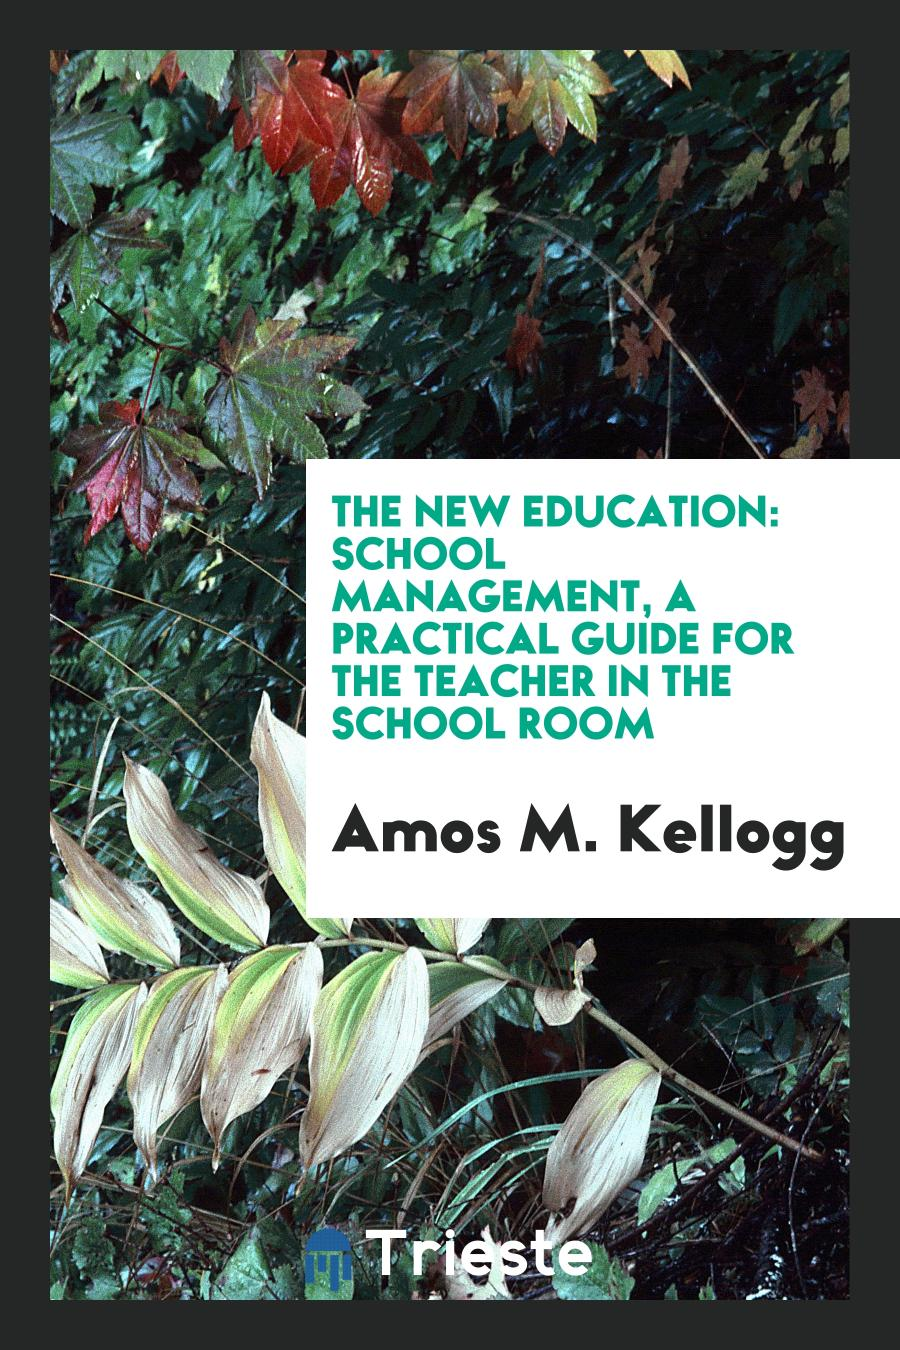 The New Education: School Management, a Practical Guide for the Teacher in the School Room